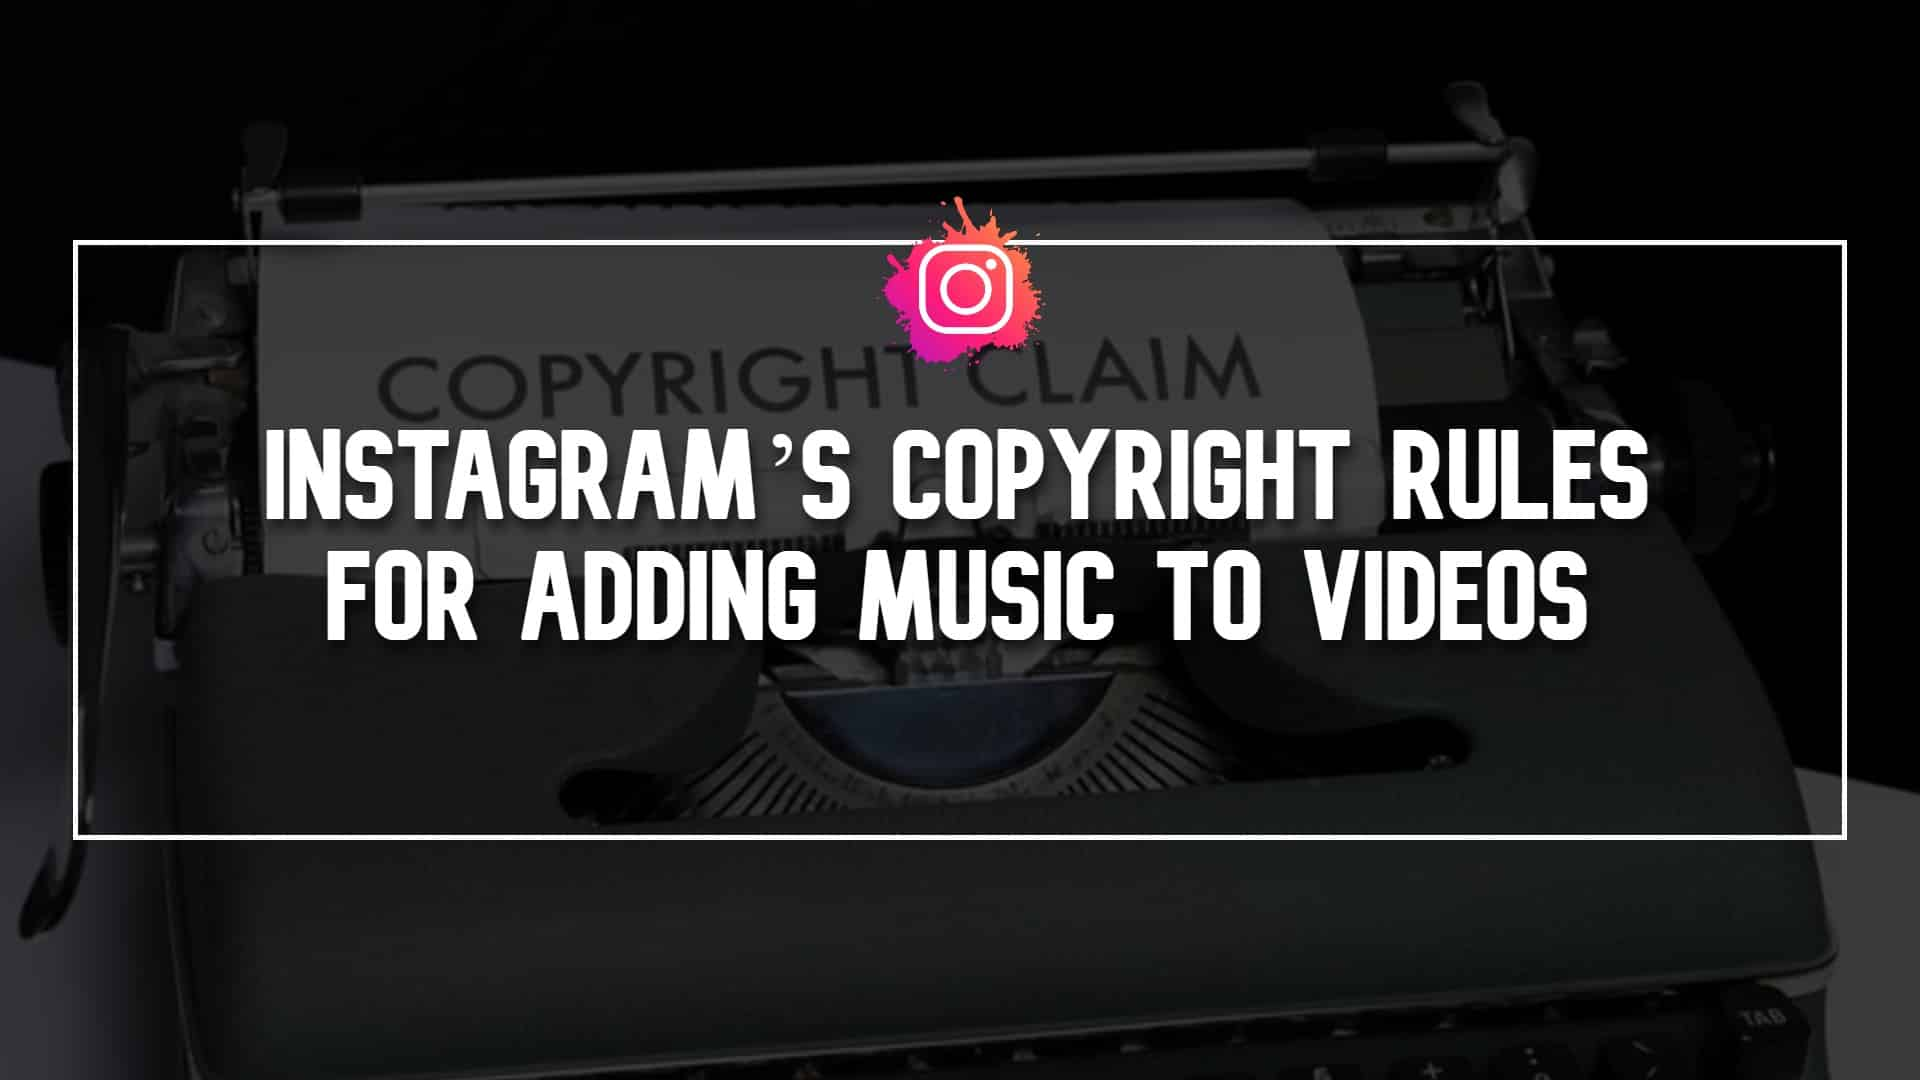 Instagrams-Copyright-Rules-for-Adding-Music-to-Videos.jpg